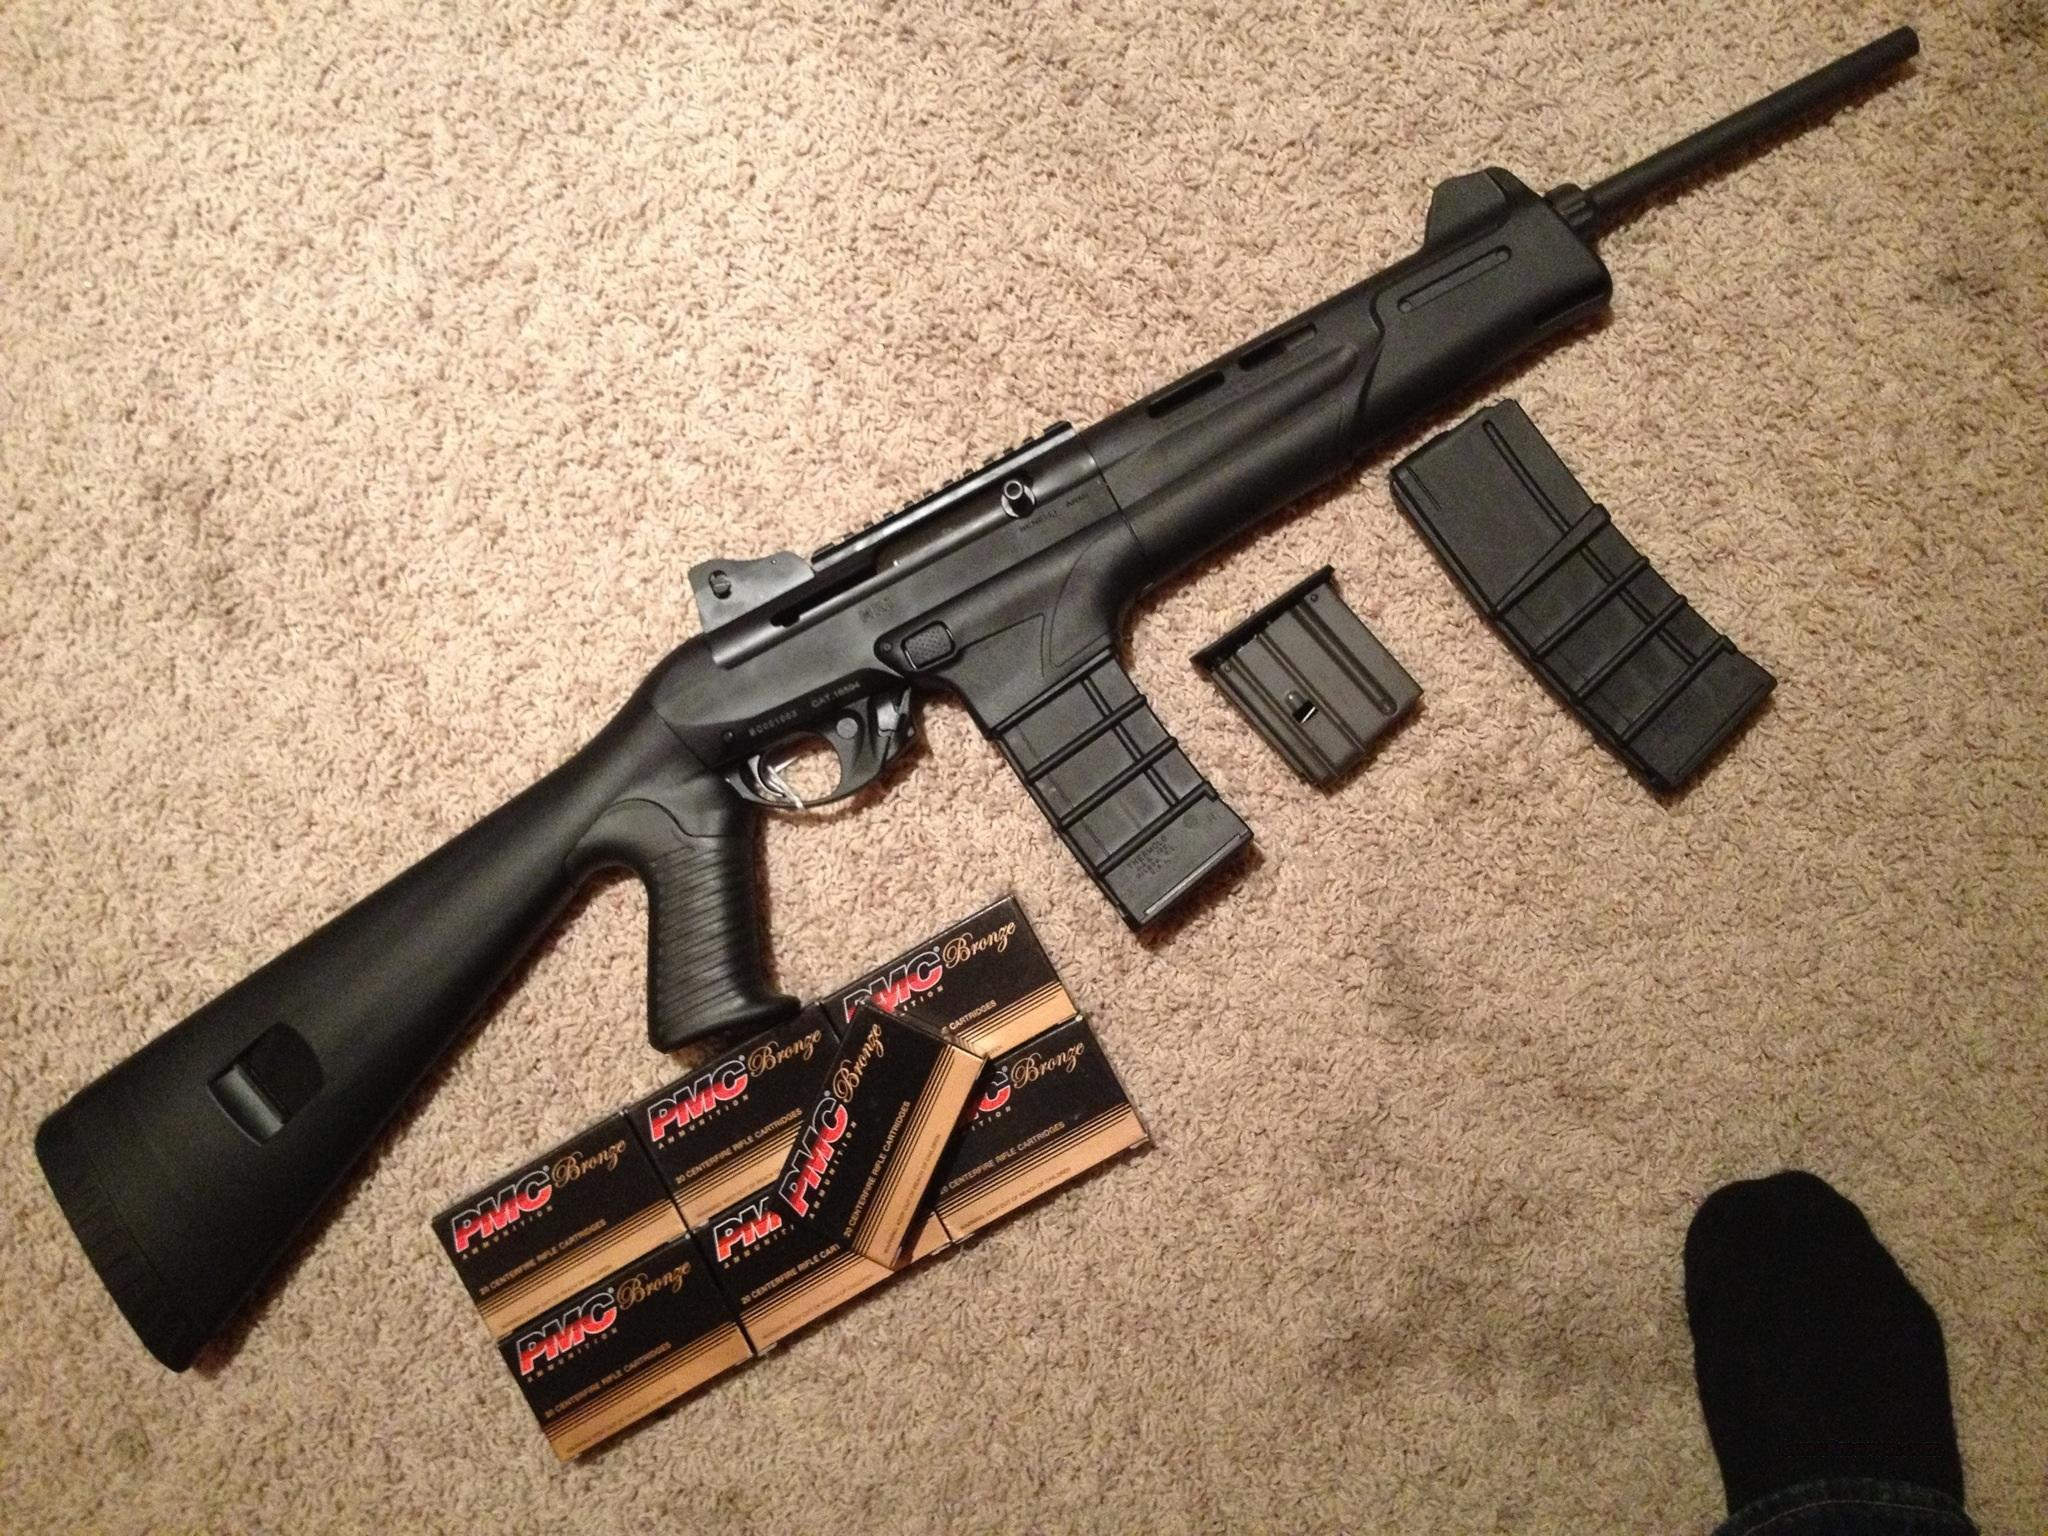 Benelli MR1 .223 (5.56 NATO) AR type with 140 rounds of ammo and 2 30 rd mags  Guns > Rifles > Benelli Rifles